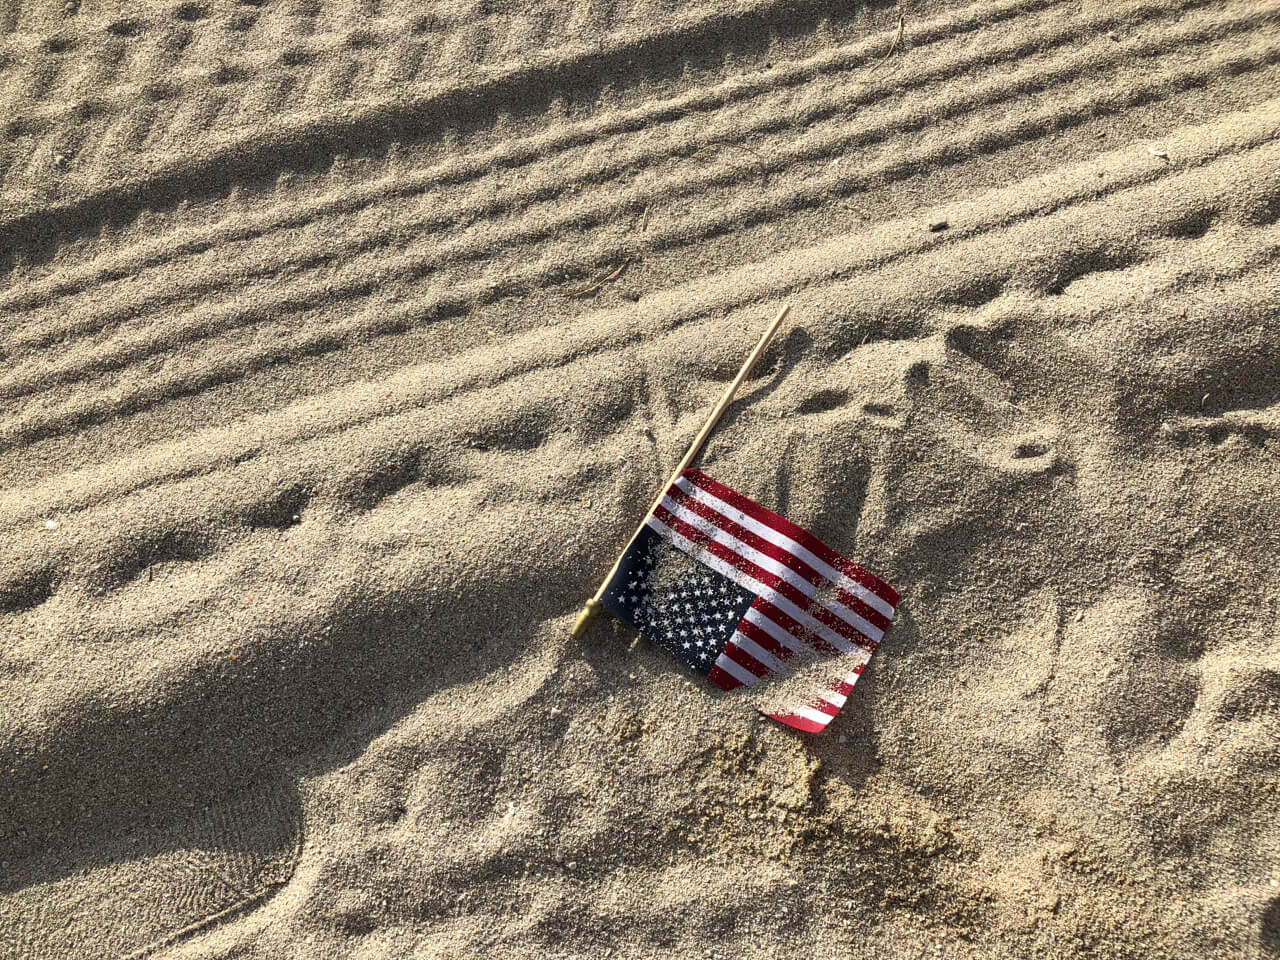 Jérémie André, Jeremie Andre, Environment, American flag, US Flag, Beach, 4th of July, Fourth of July, Independence Day, Beach Cleanup, Cleanup, Pollution, 4th of July in Miami Beach